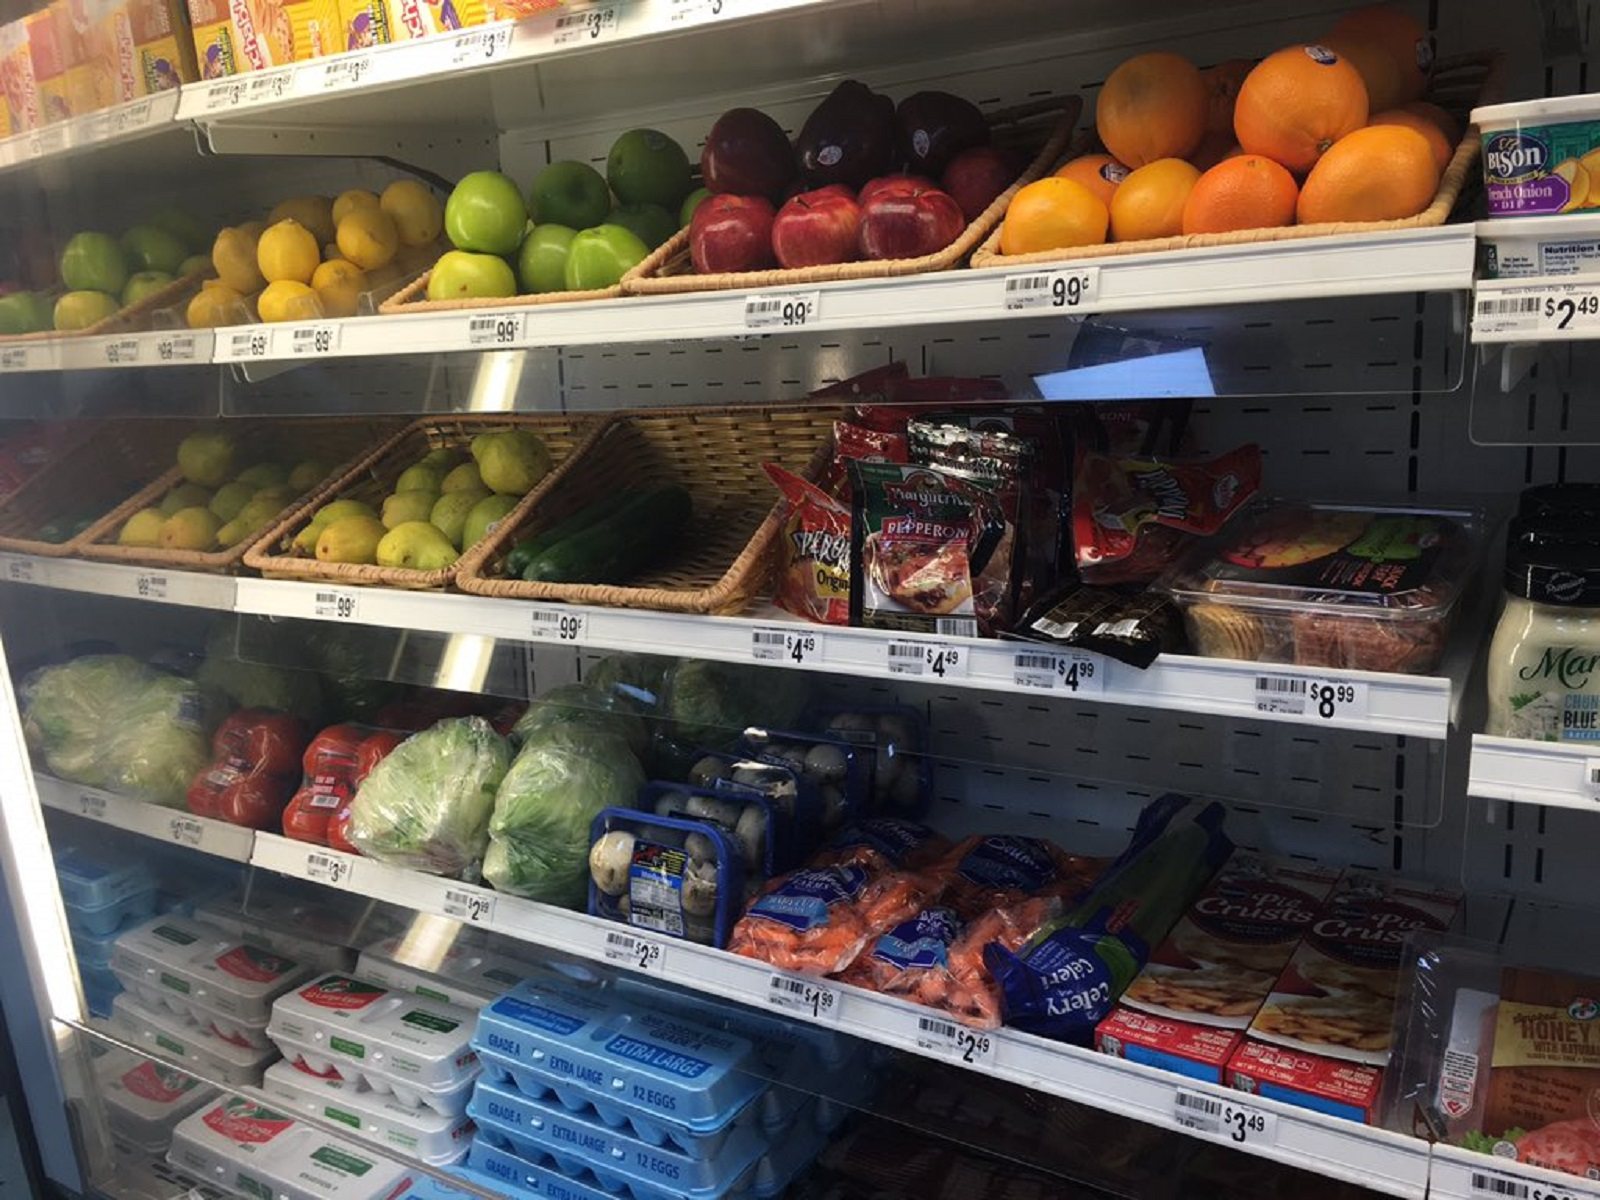 You can make healthy food choices - even at the gas station convenience store. (Photo by Kaitlyn Summers)